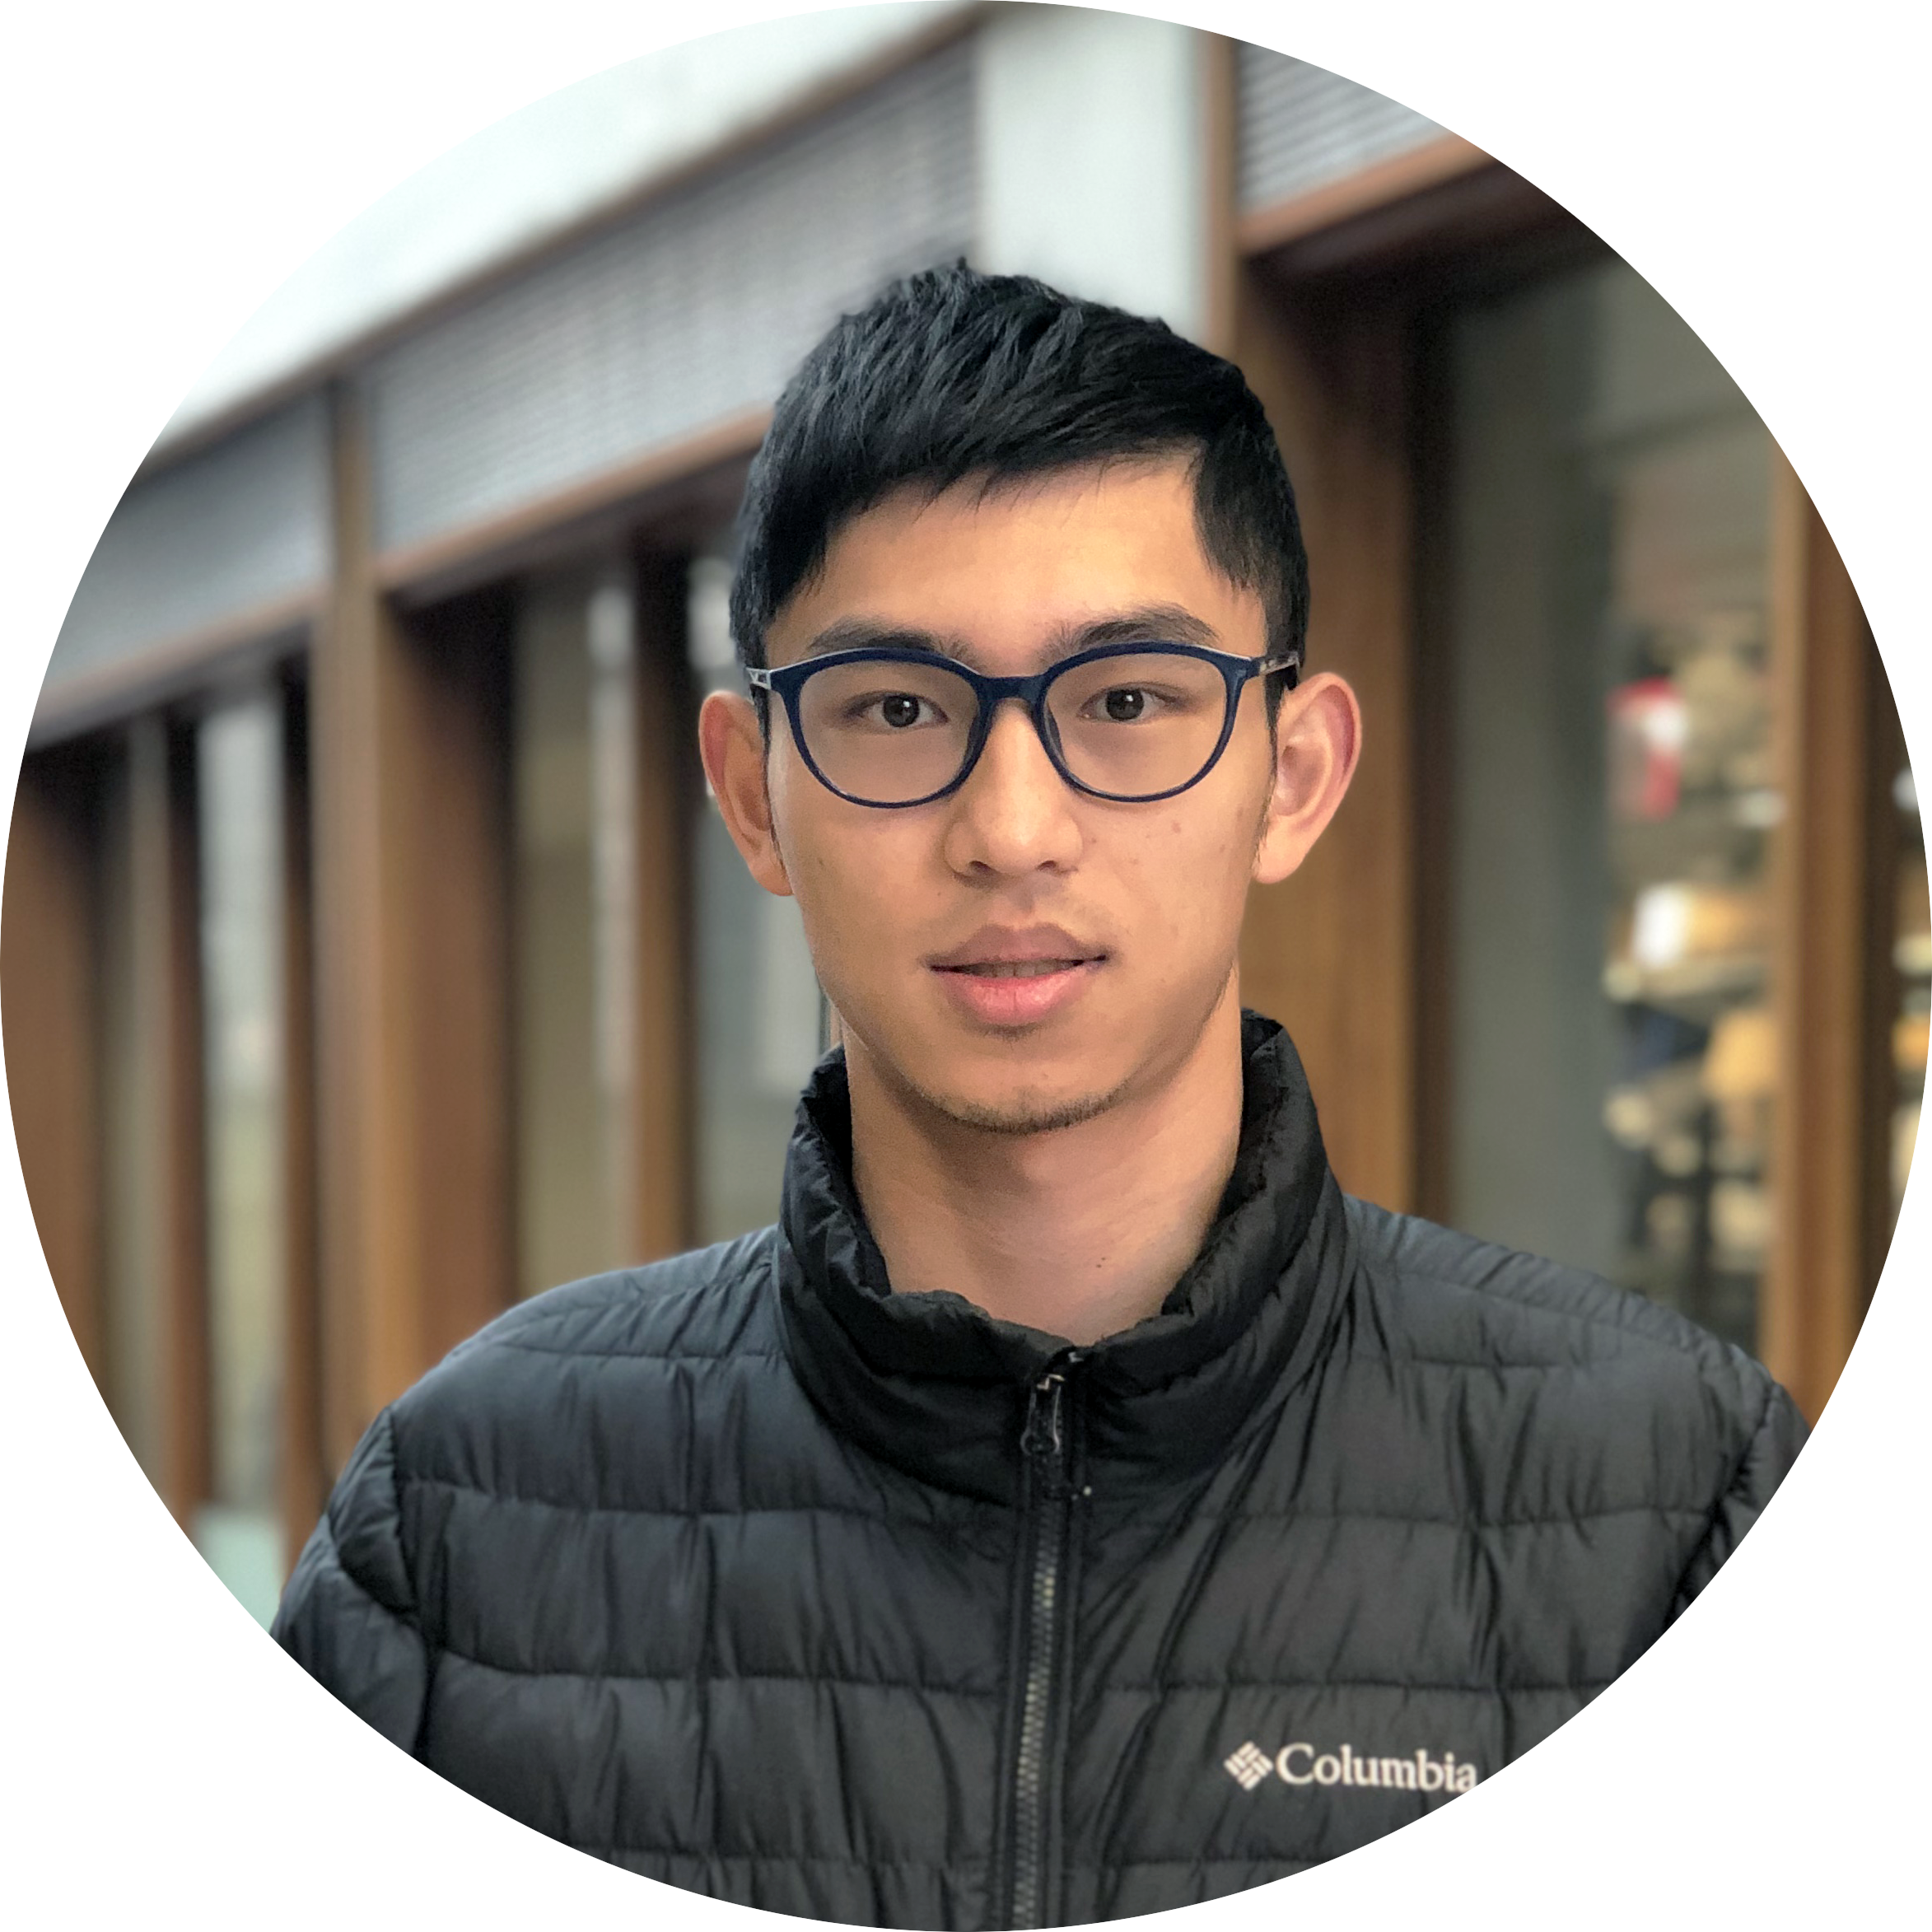 Ruiheng Wu  |  RuihengWu2023@u.northwestern.edu    Graduate Student   Ruiheng earned his B.Sc. in Chemistry with a minor in Math in 2018 from Peking University. He was a member of Prof. Junrong Zheng's lab and spent a lot of time on ultrafast laser spectroscopy and different microscope systems. He joined Northwestern as a chemistry Ph.D student in 2018. He loves photography, art and history in his spare time.